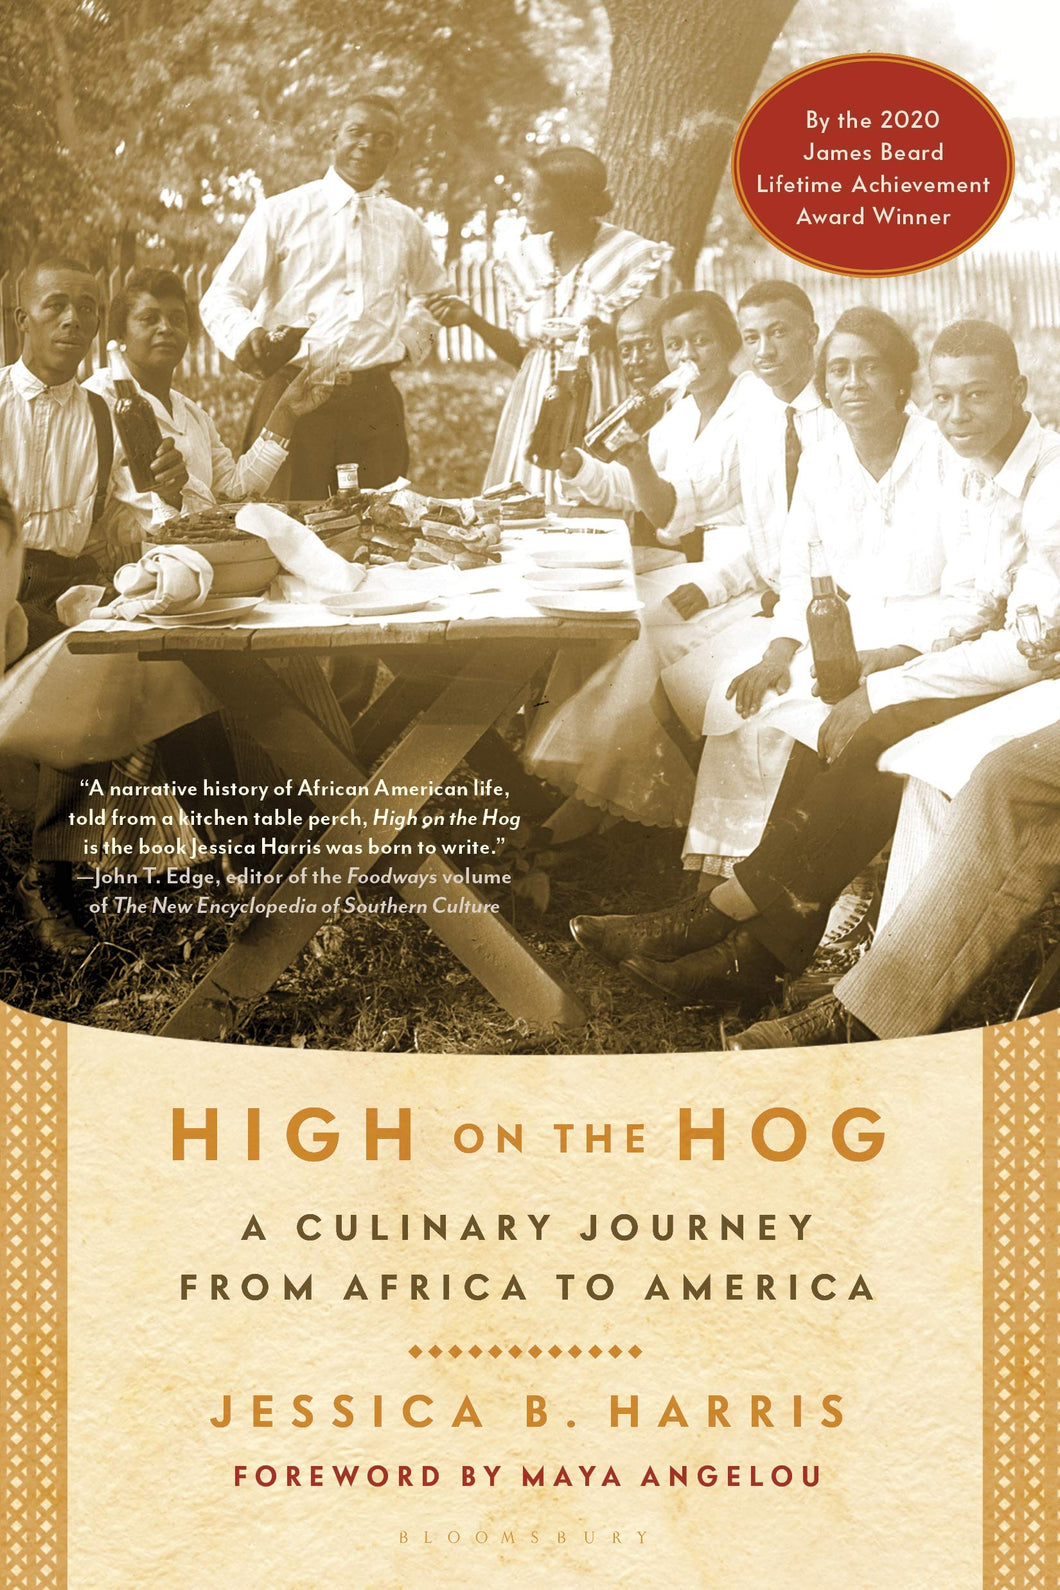 High on the Hog: A Culinary Journey by Jessica B. Harris